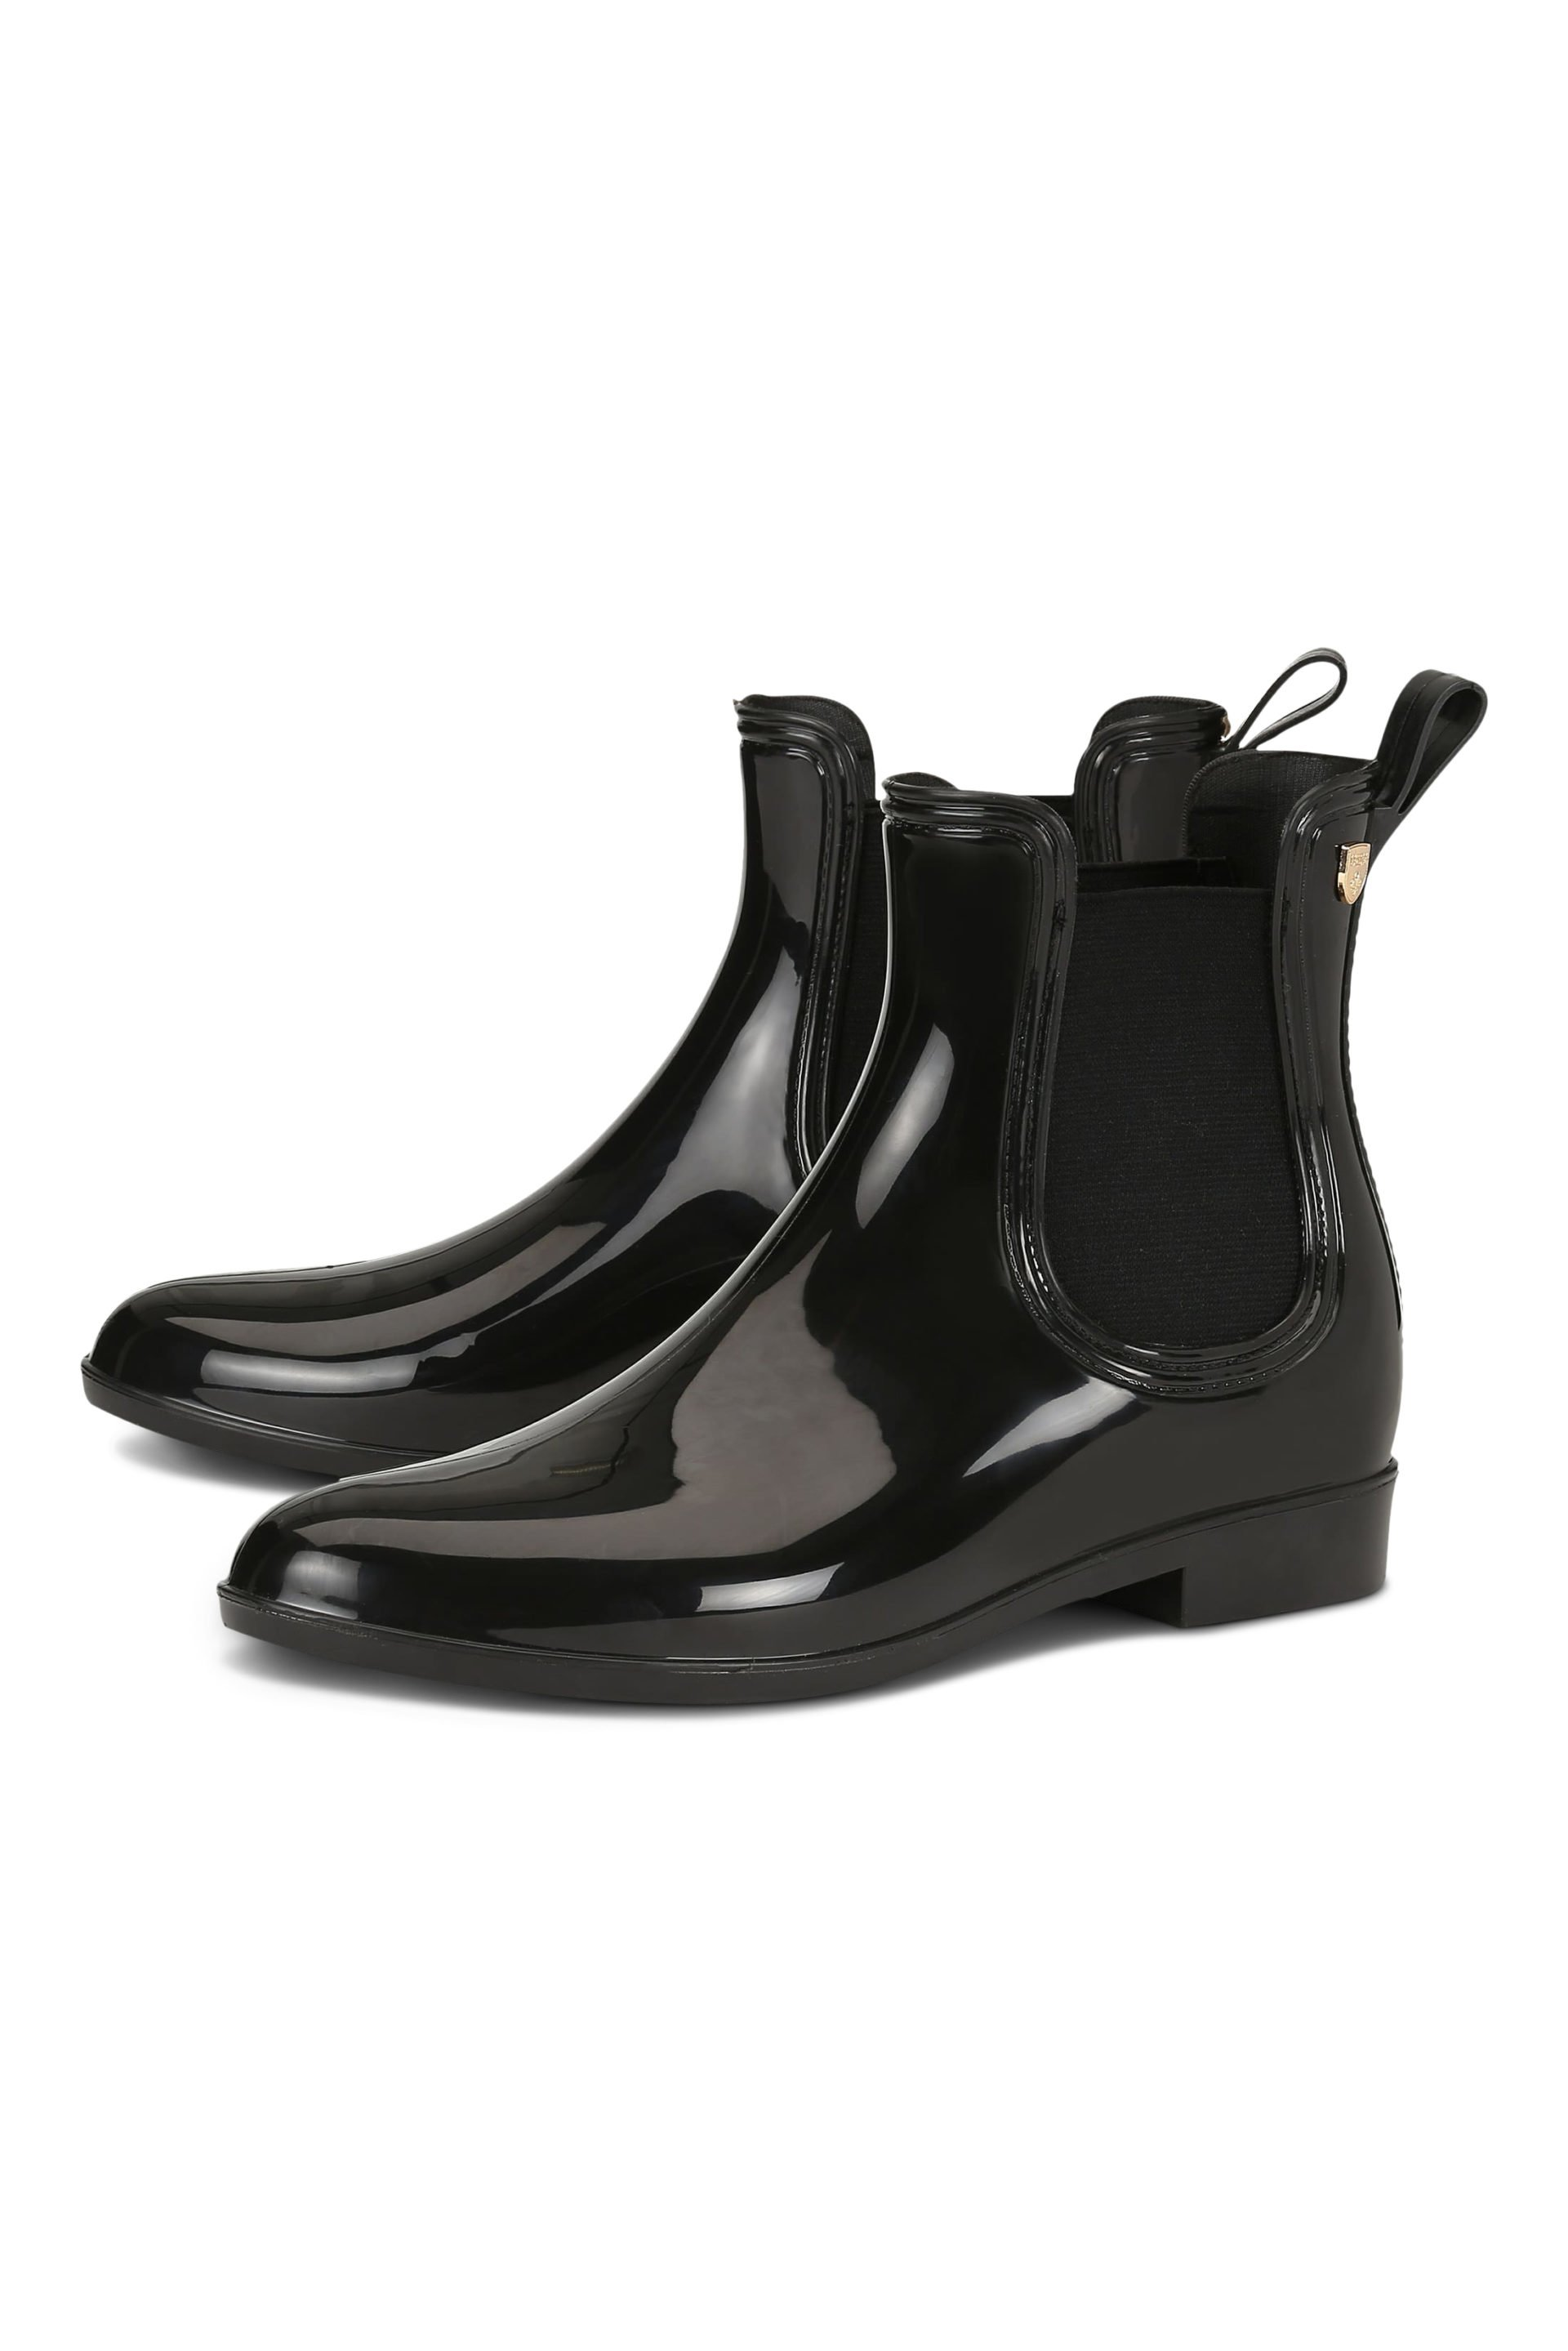 Chelsea rainboots in shiny black